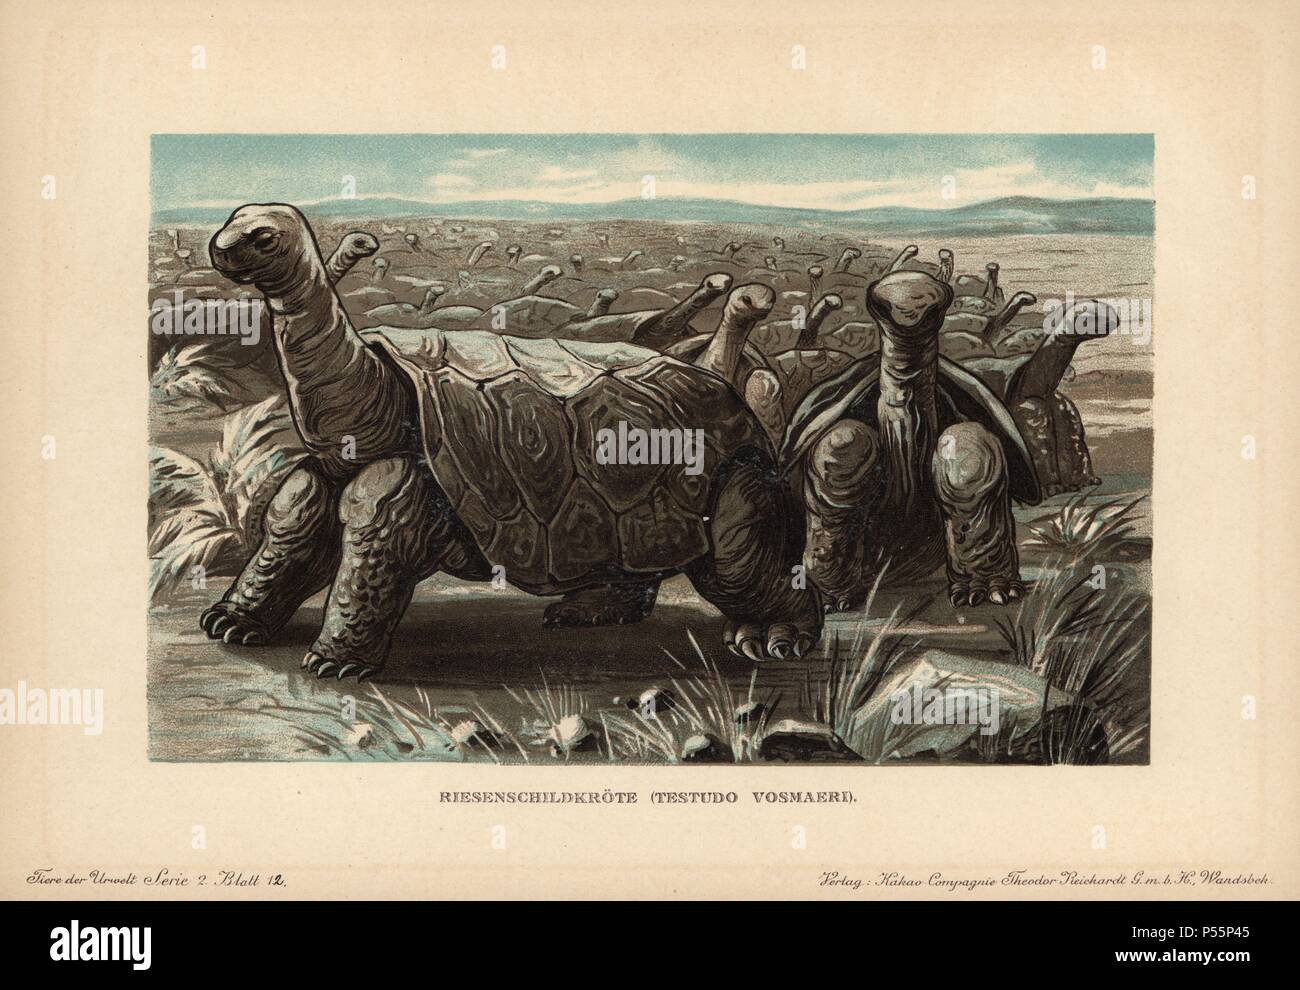 Saddle-backed Rodrigues giant tortoise, Cylindraspis vosmaeri, Testudo Indica Vosmaer, recently extinct species of tortoise. Last recorded in 1800 in Mauritius. Colour printed (chromolithograph) illustration by F. John from 'Tiere der Urwelt' Animals of the Prehistoric World, 1910, Hamburg. From a series of prehistoric creature cards published by the Reichardt Cocoa company. - Stock Image